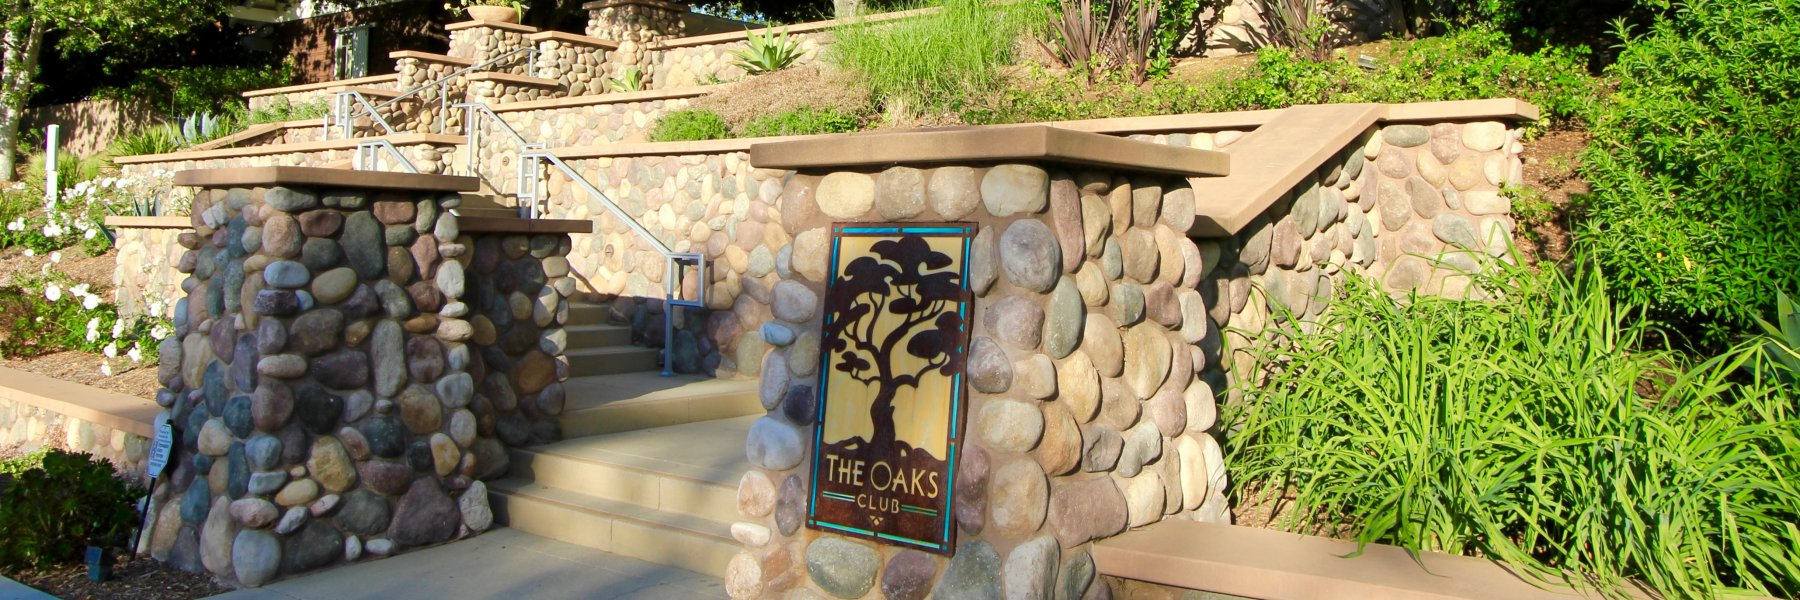 La Costa Oaks is a community of homes in Carlsbad California